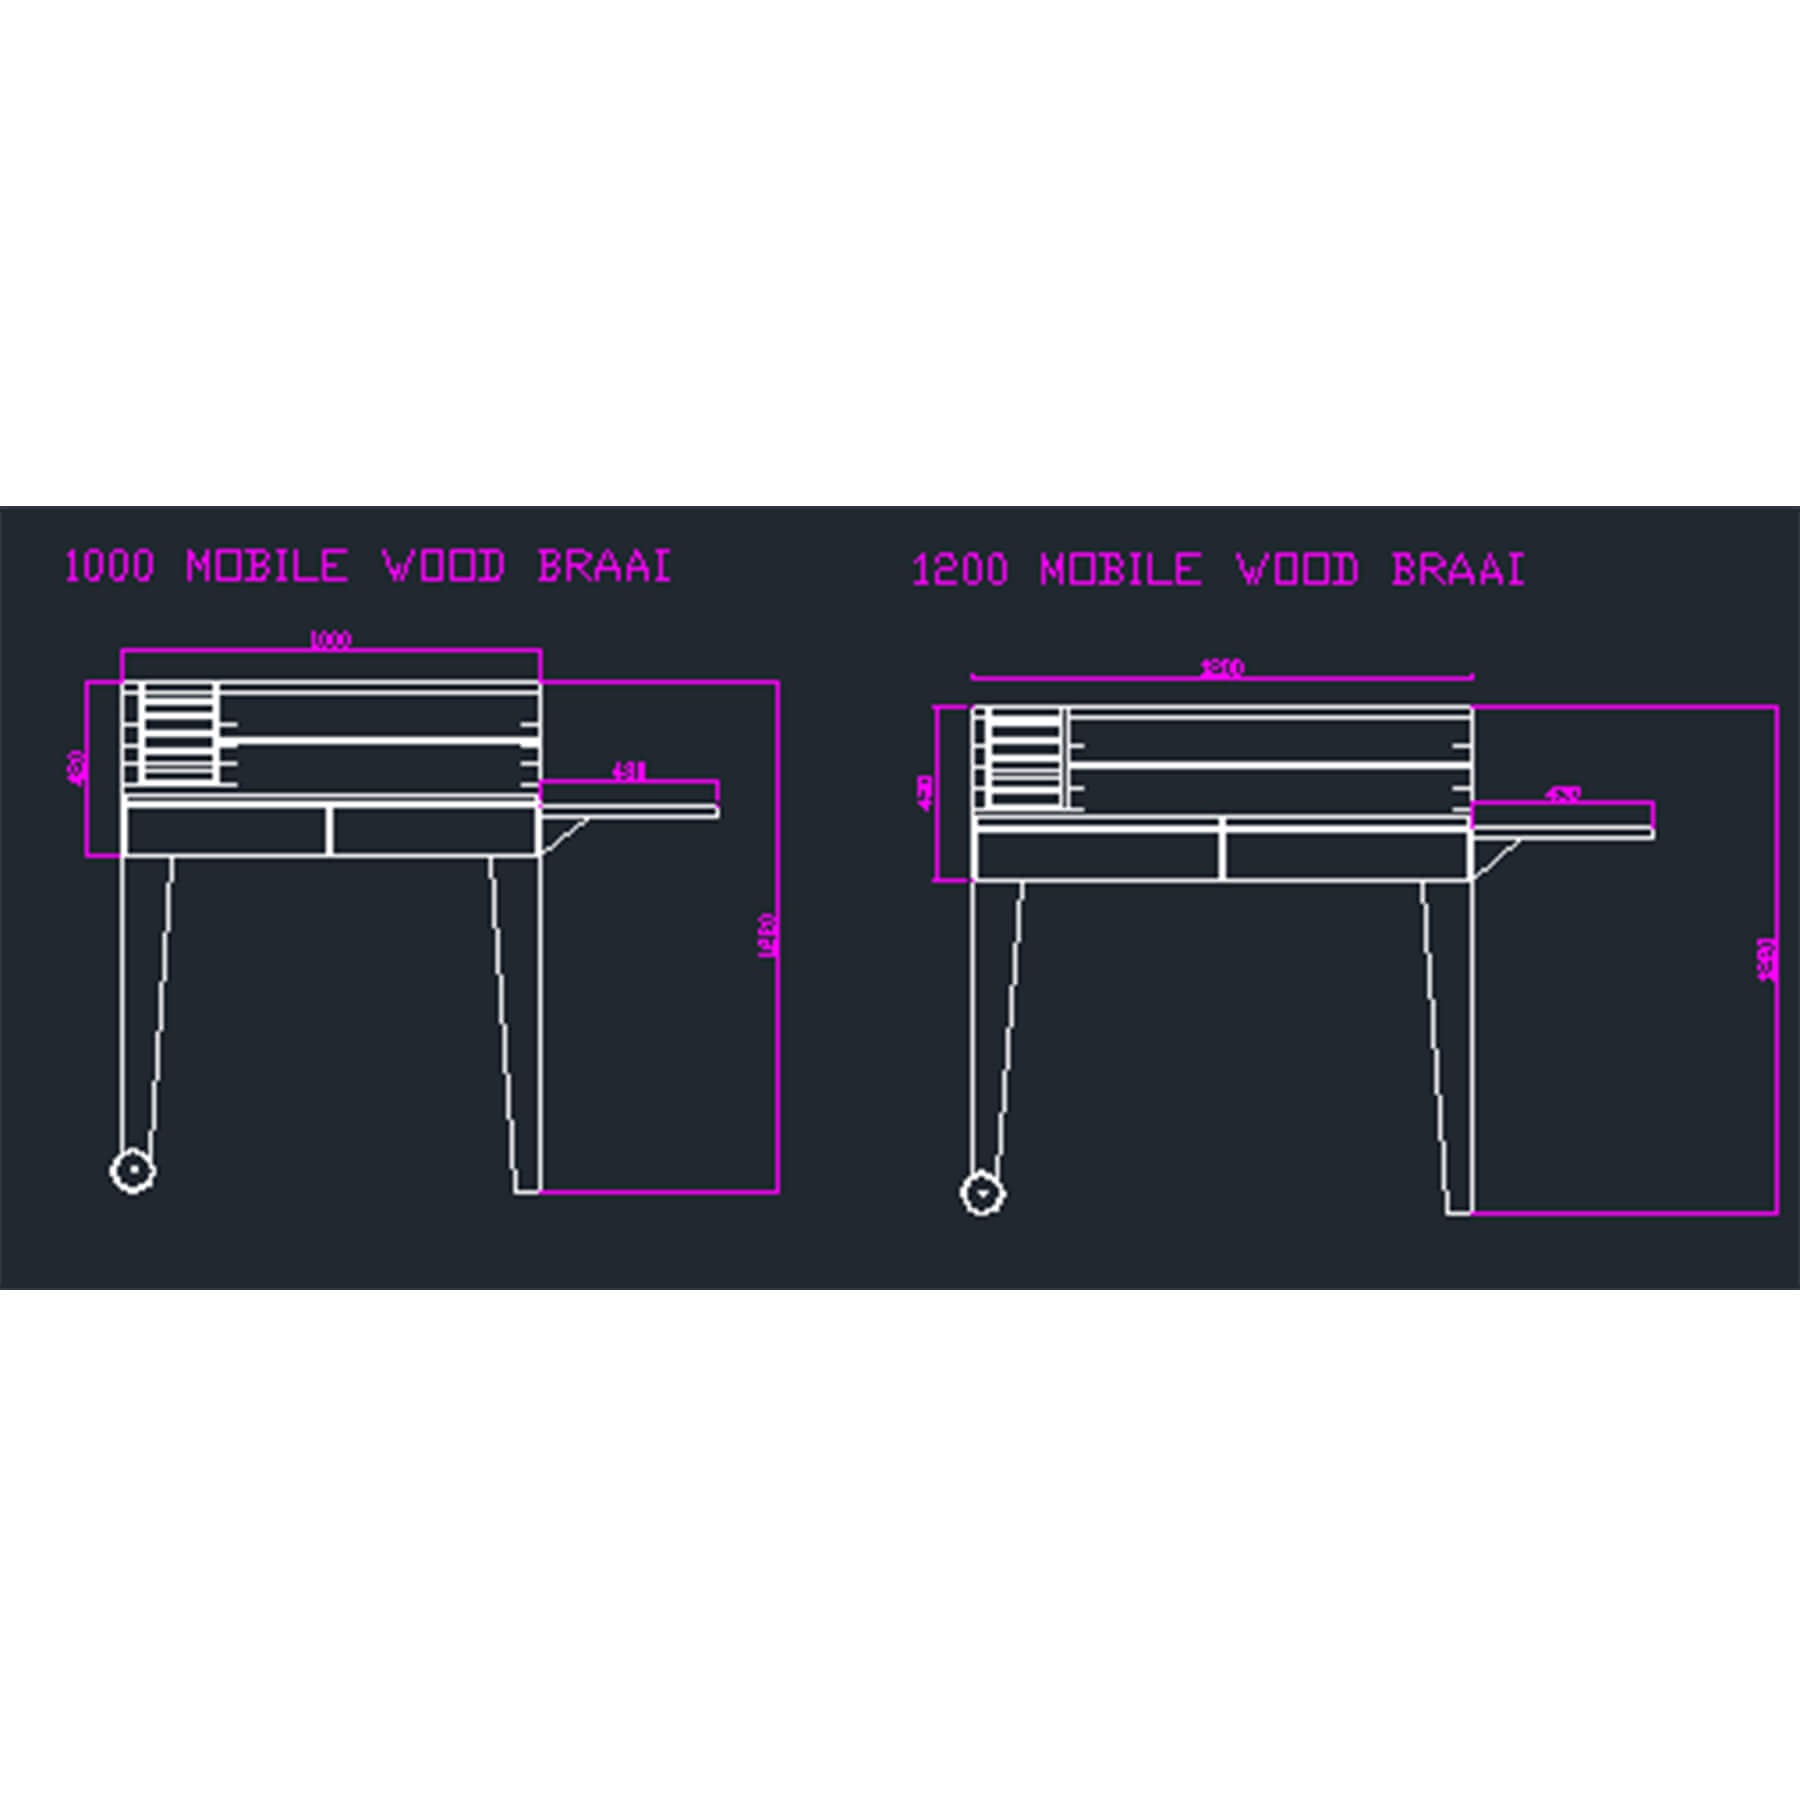 Technical-Specifications-Mobile-Wood-Braai